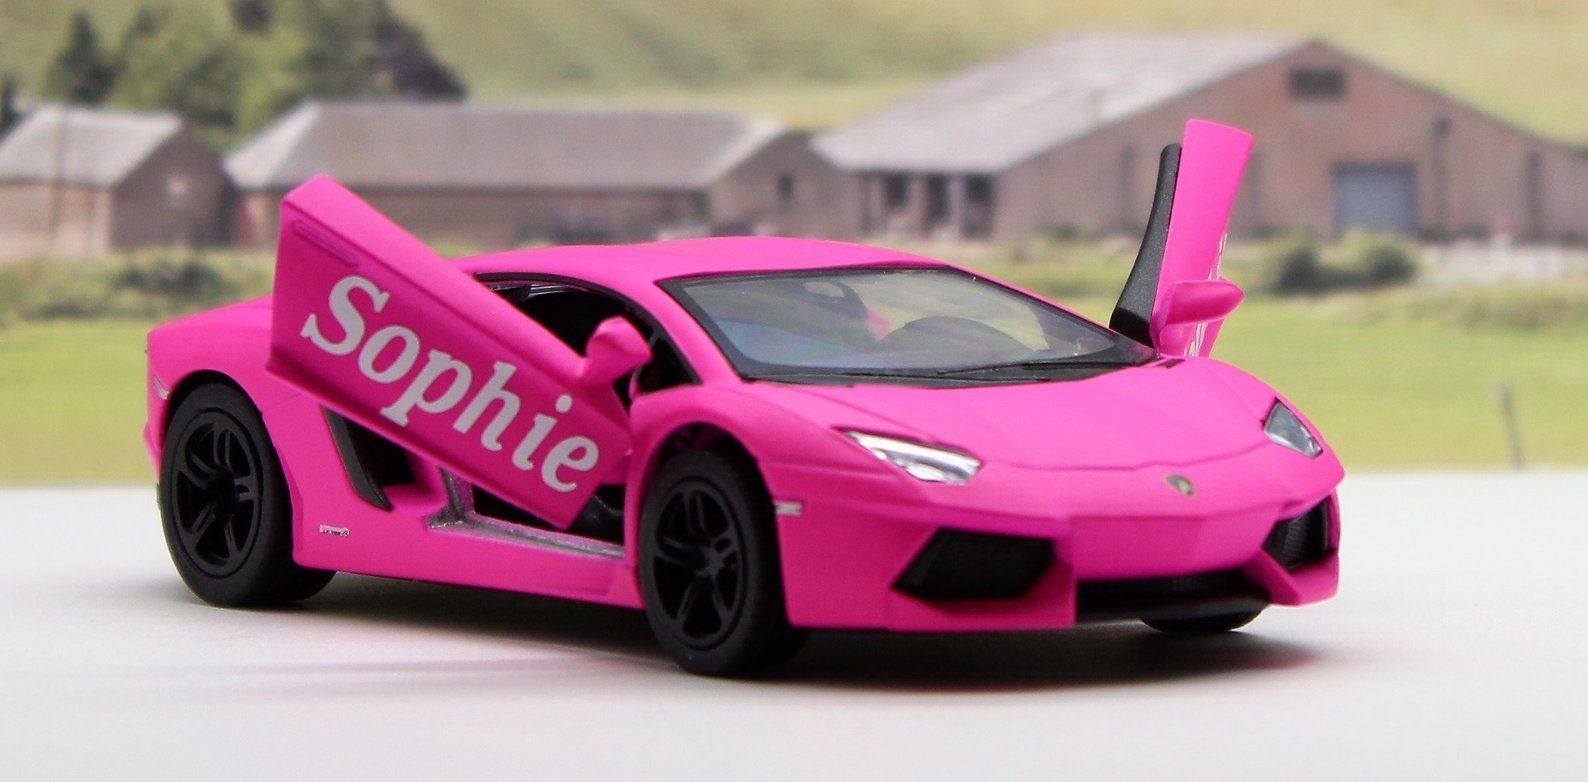 Personalised Name Personalized Name Gift Pink Diecast Etsy Pink Lamborghini Super Cars Images Car Number Plates